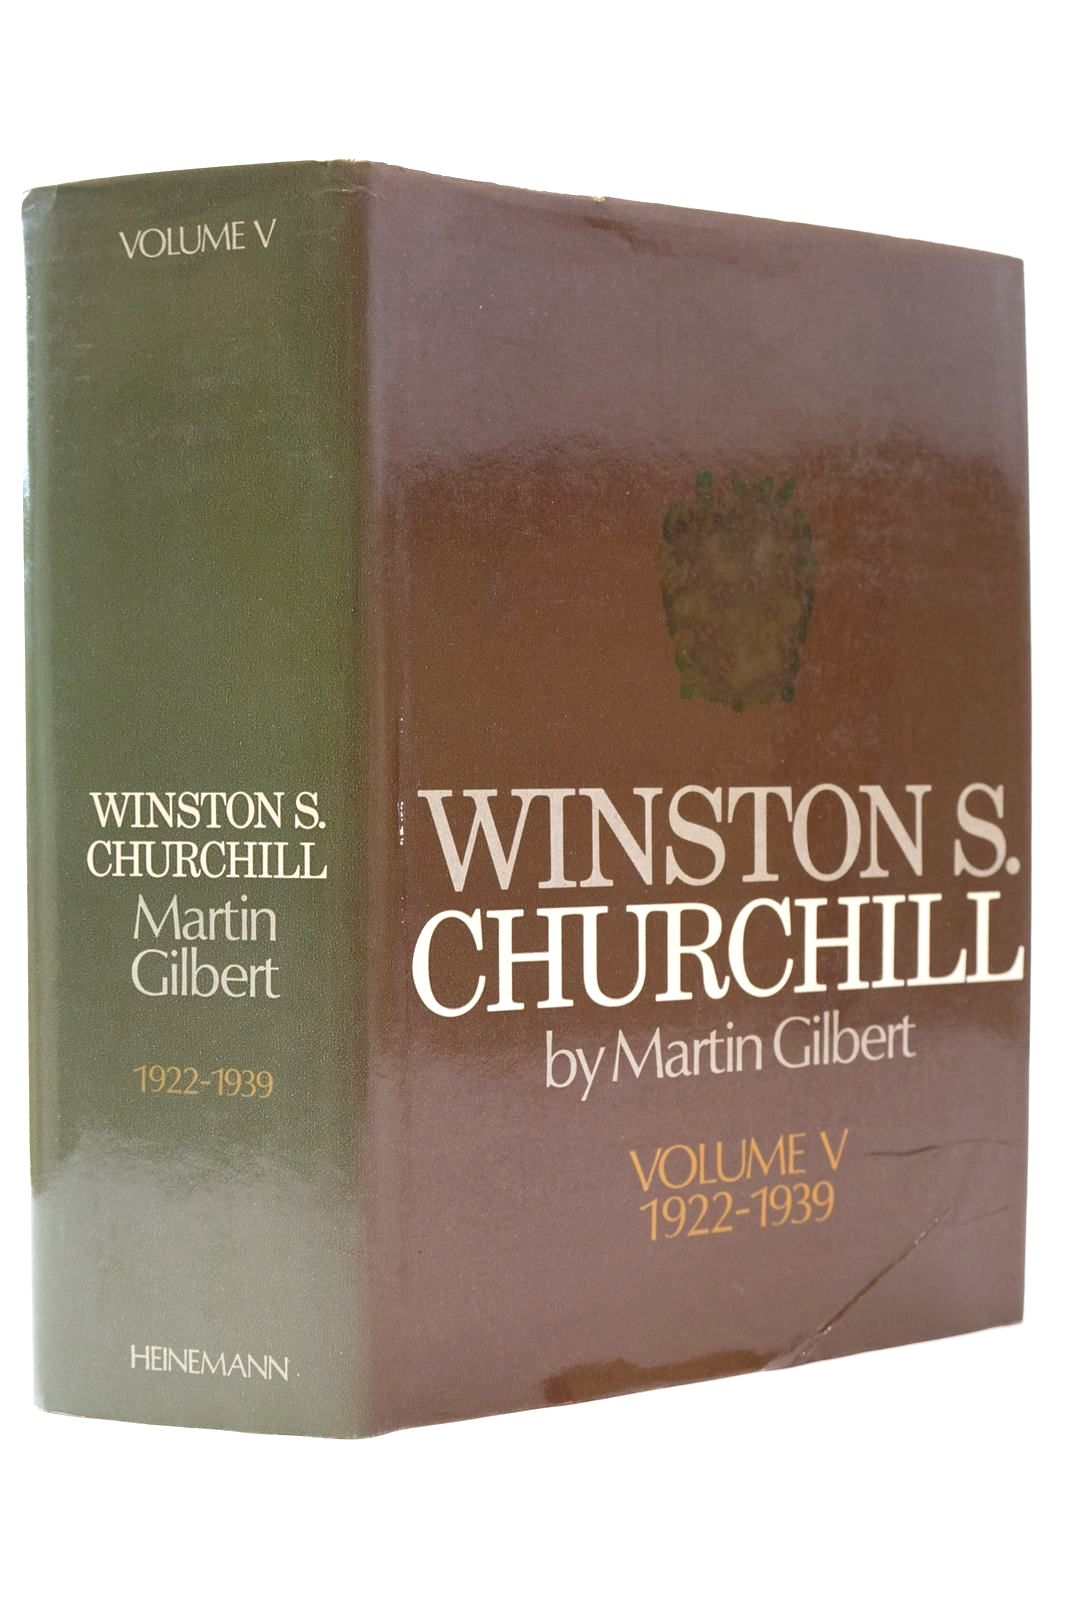 Photo of WINSTON S. CHURCHILL VOLUME V 1922-1939- Stock Number: 2132687